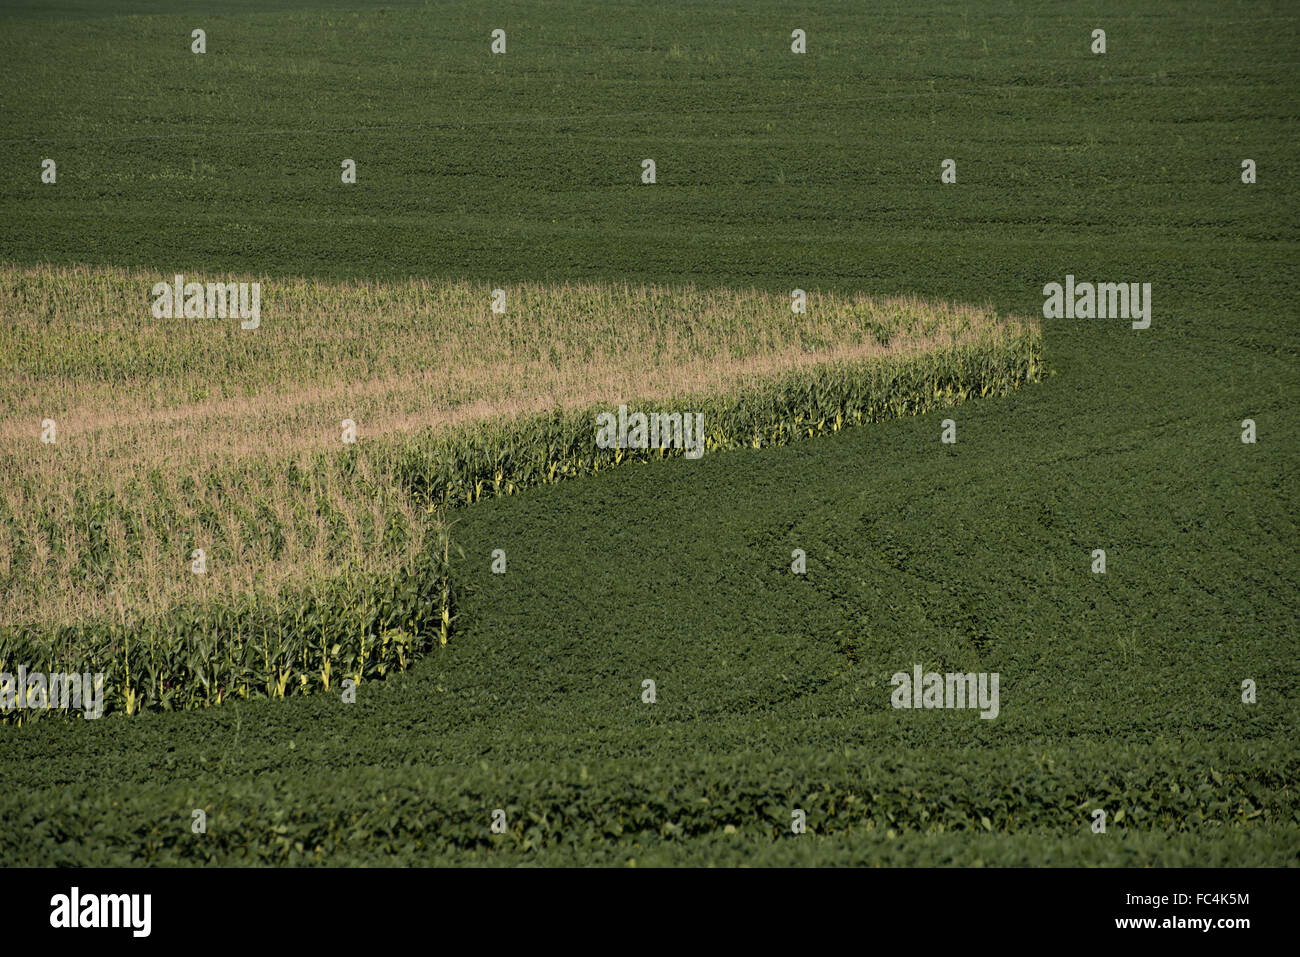 Soybean corn plantation in the countryside - rotation of crops - Stock Image